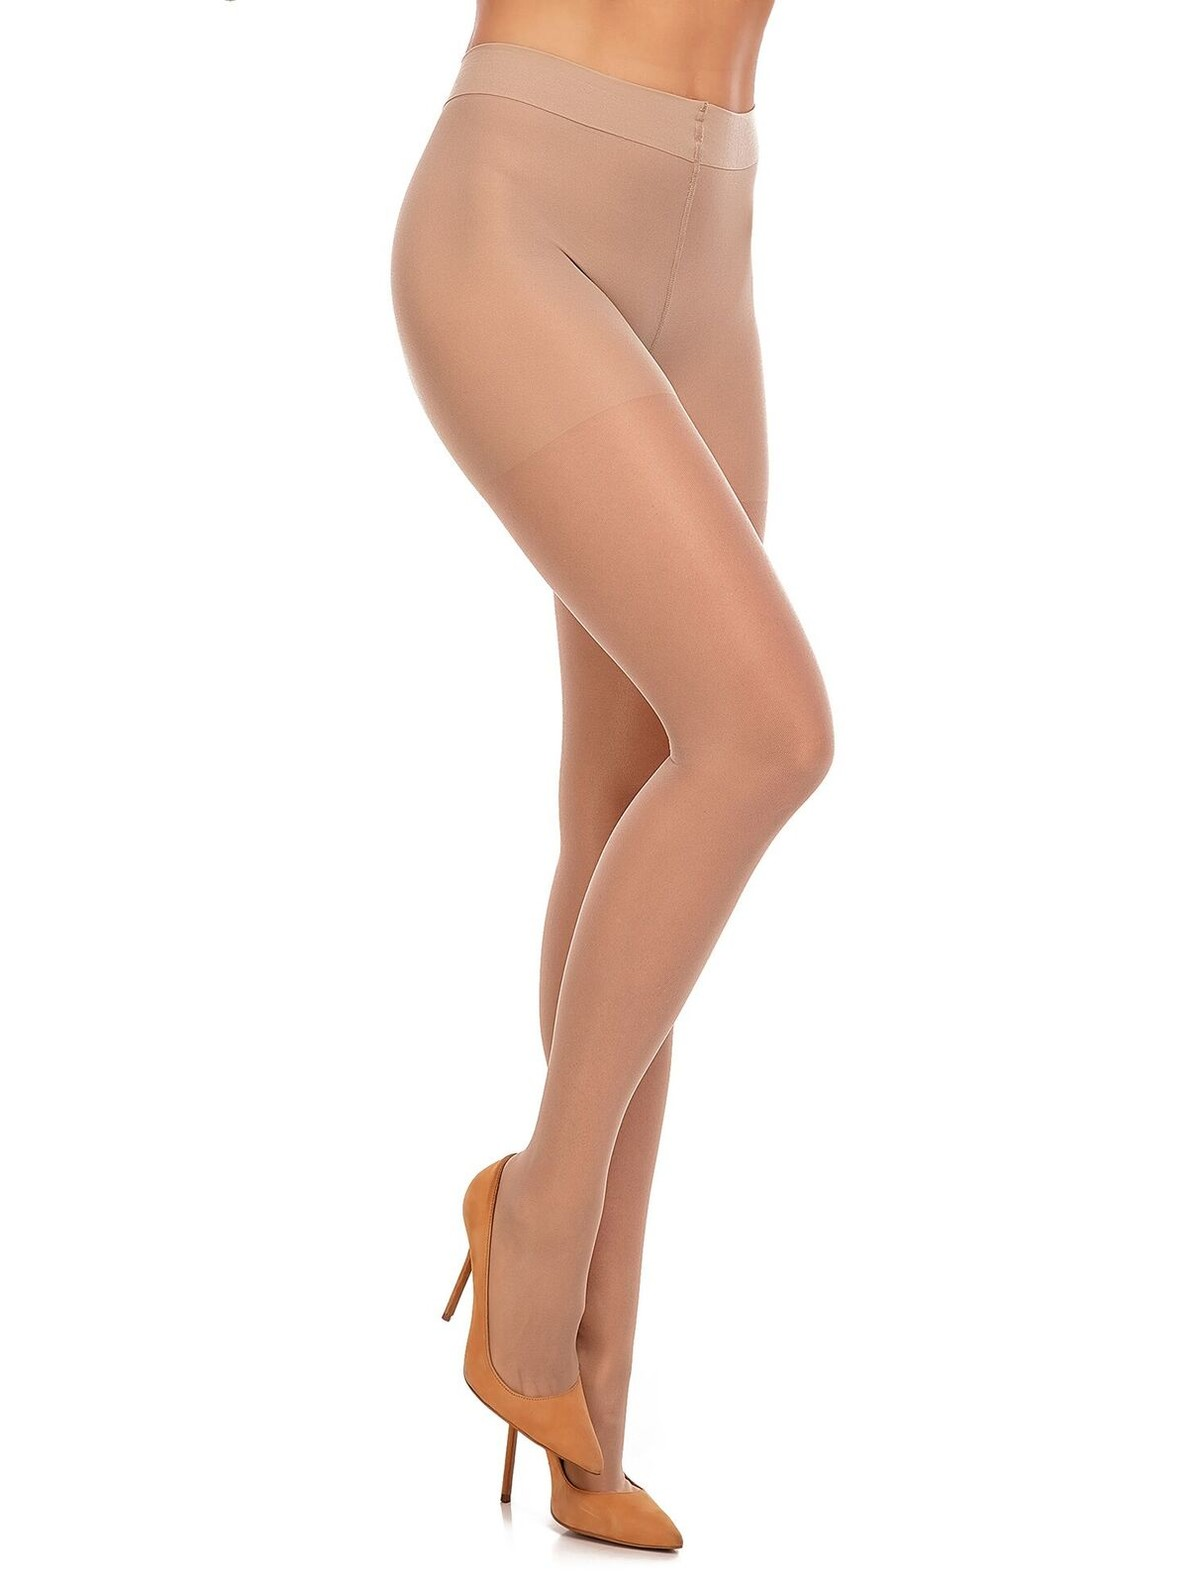 300d1fb8dc0 ... Levante Levia 140 Strong Support Tights naturel ...